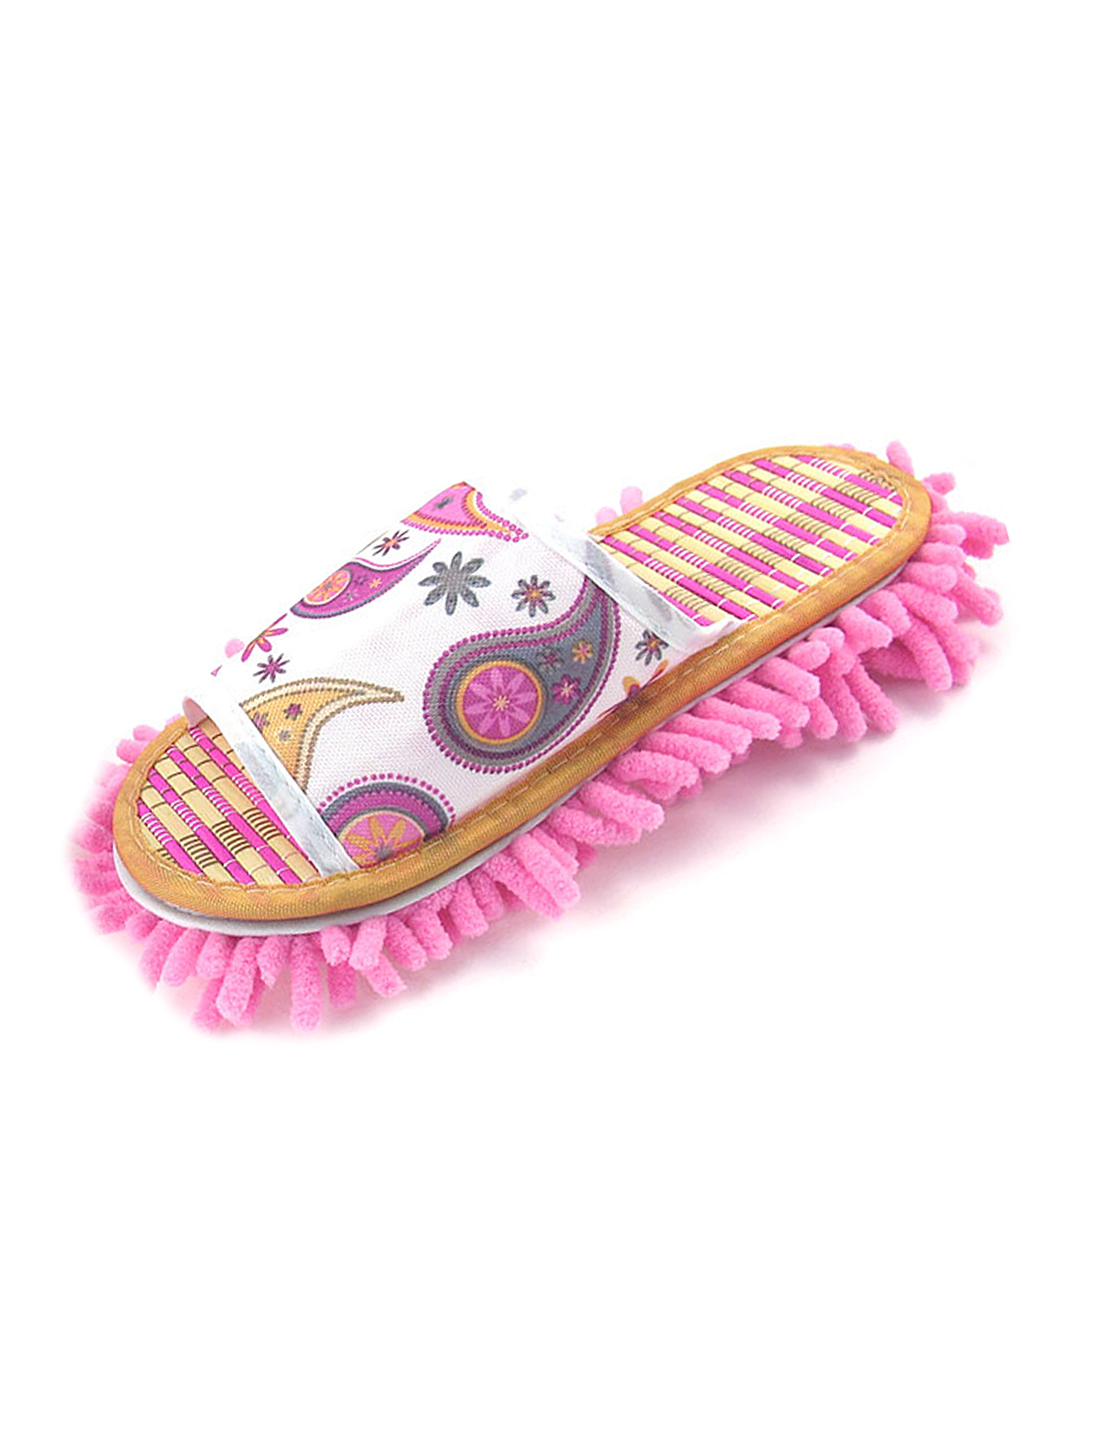 Ladies Pink Opening Toe Design Bamboo Insole Mop Slippers Shoes UK 4